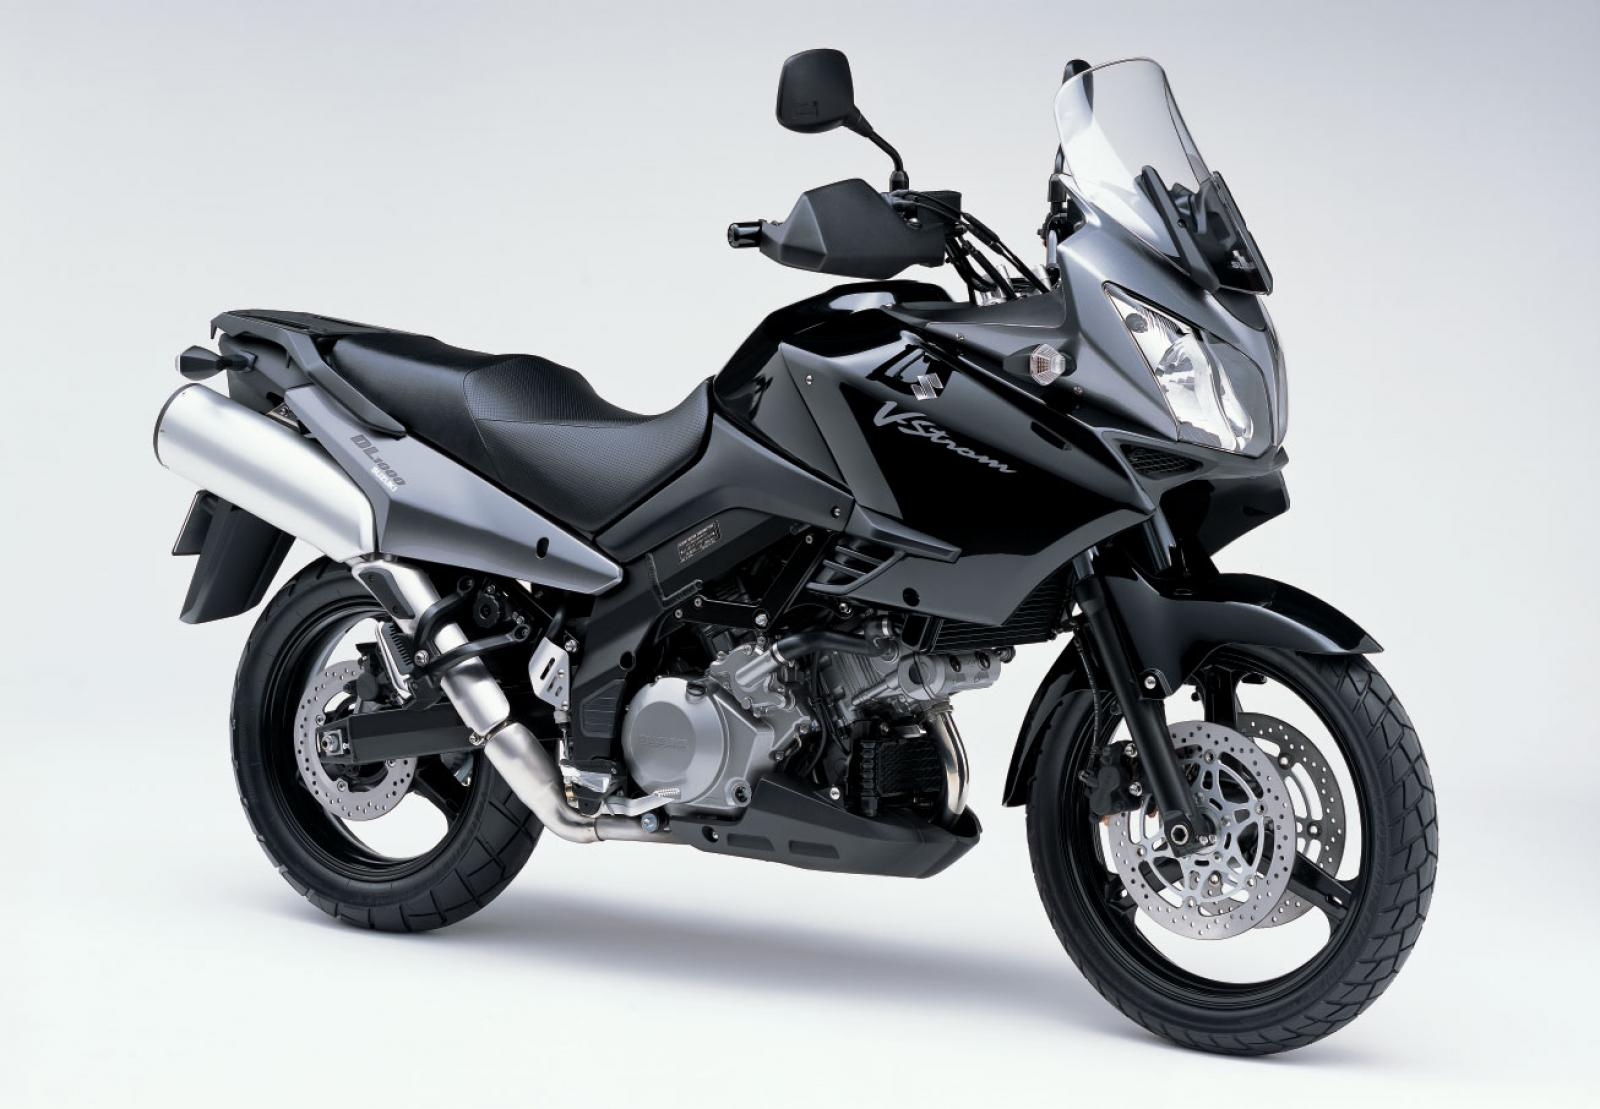 2007 suzuki v strom 1000 moto zombdrive com. Black Bedroom Furniture Sets. Home Design Ideas